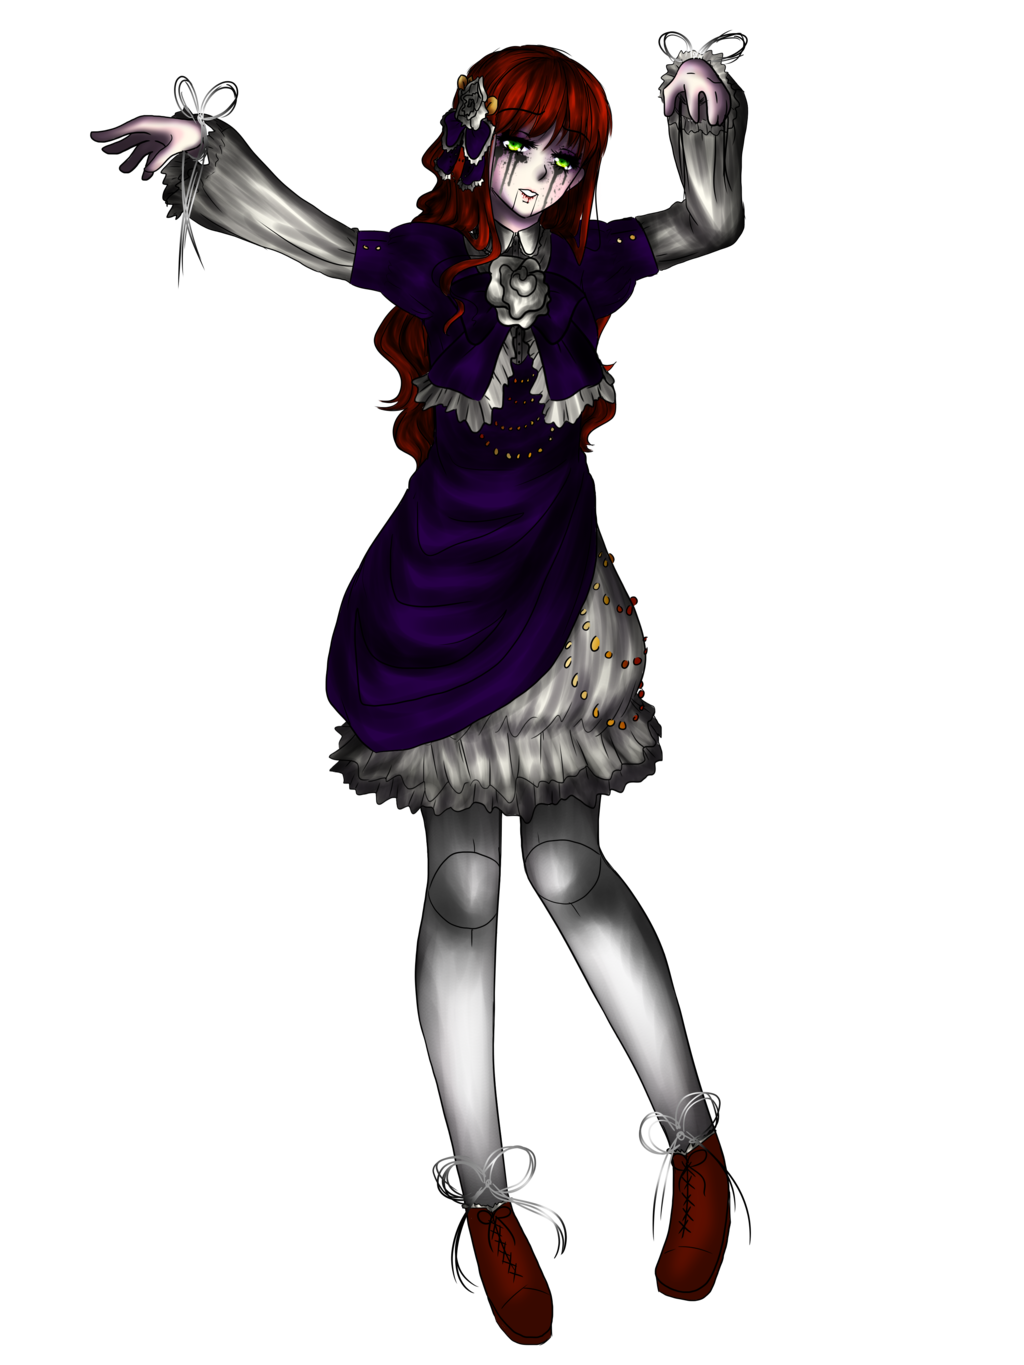 clipart free stock Marionette drawing. Cyr as a creepy